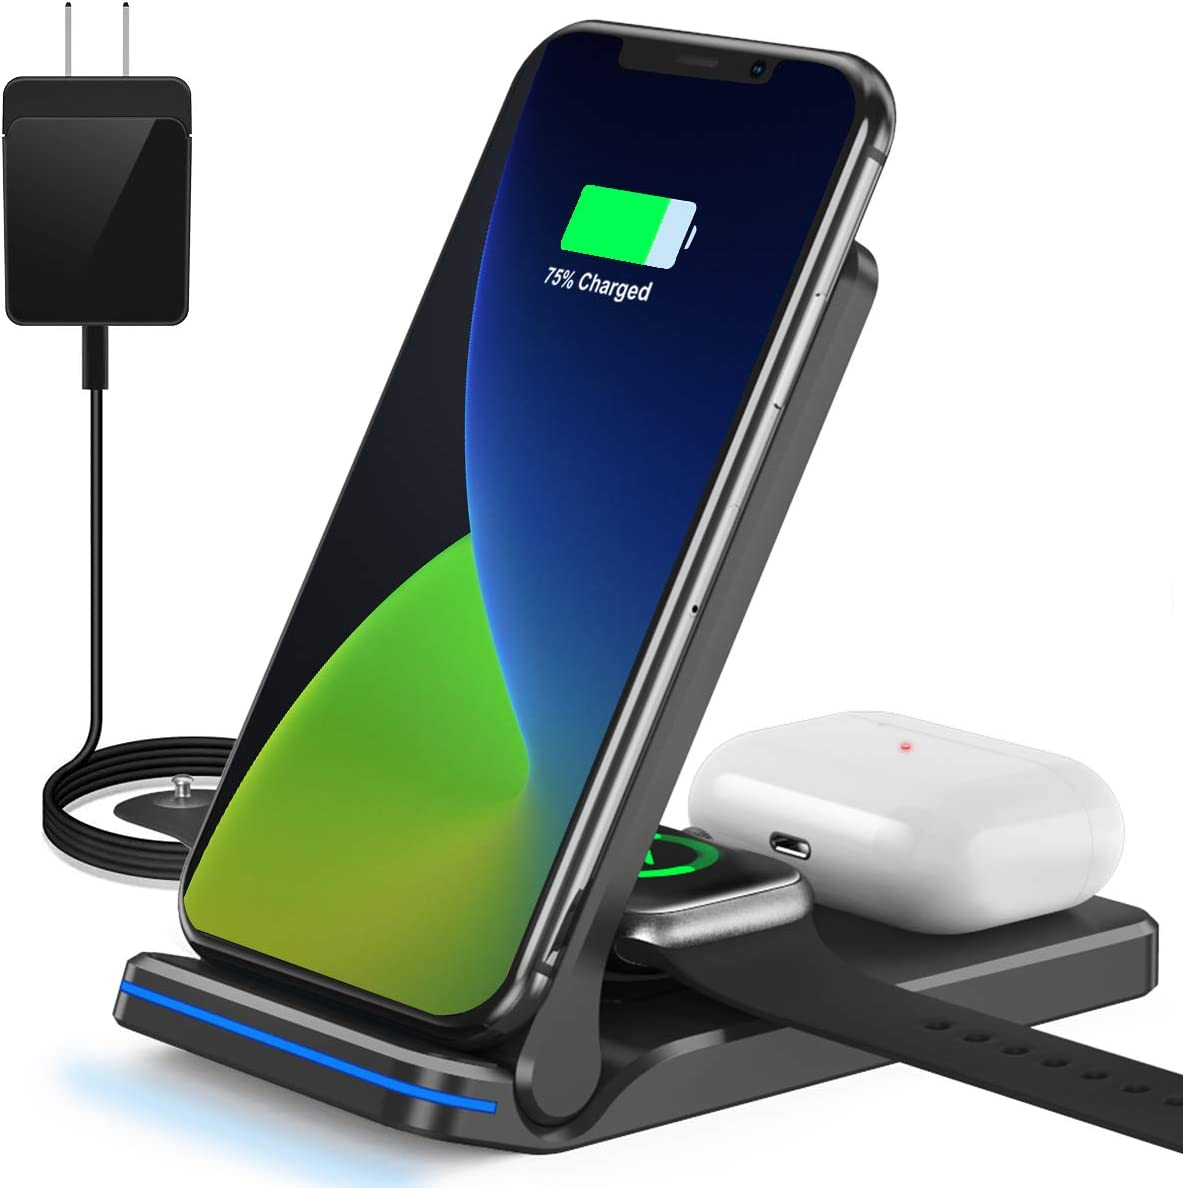 QTlier Wireless Charger, Foldable 3 in 1 Qi-Certified 15W Fast Charging Station for Air pods/Apple Watch se/6/5/4/3/2/1, Charging Stand for iPhone 12/11/11pro/X/XS/XR/Xs Max/8/8 Plus/Samsung (Black)